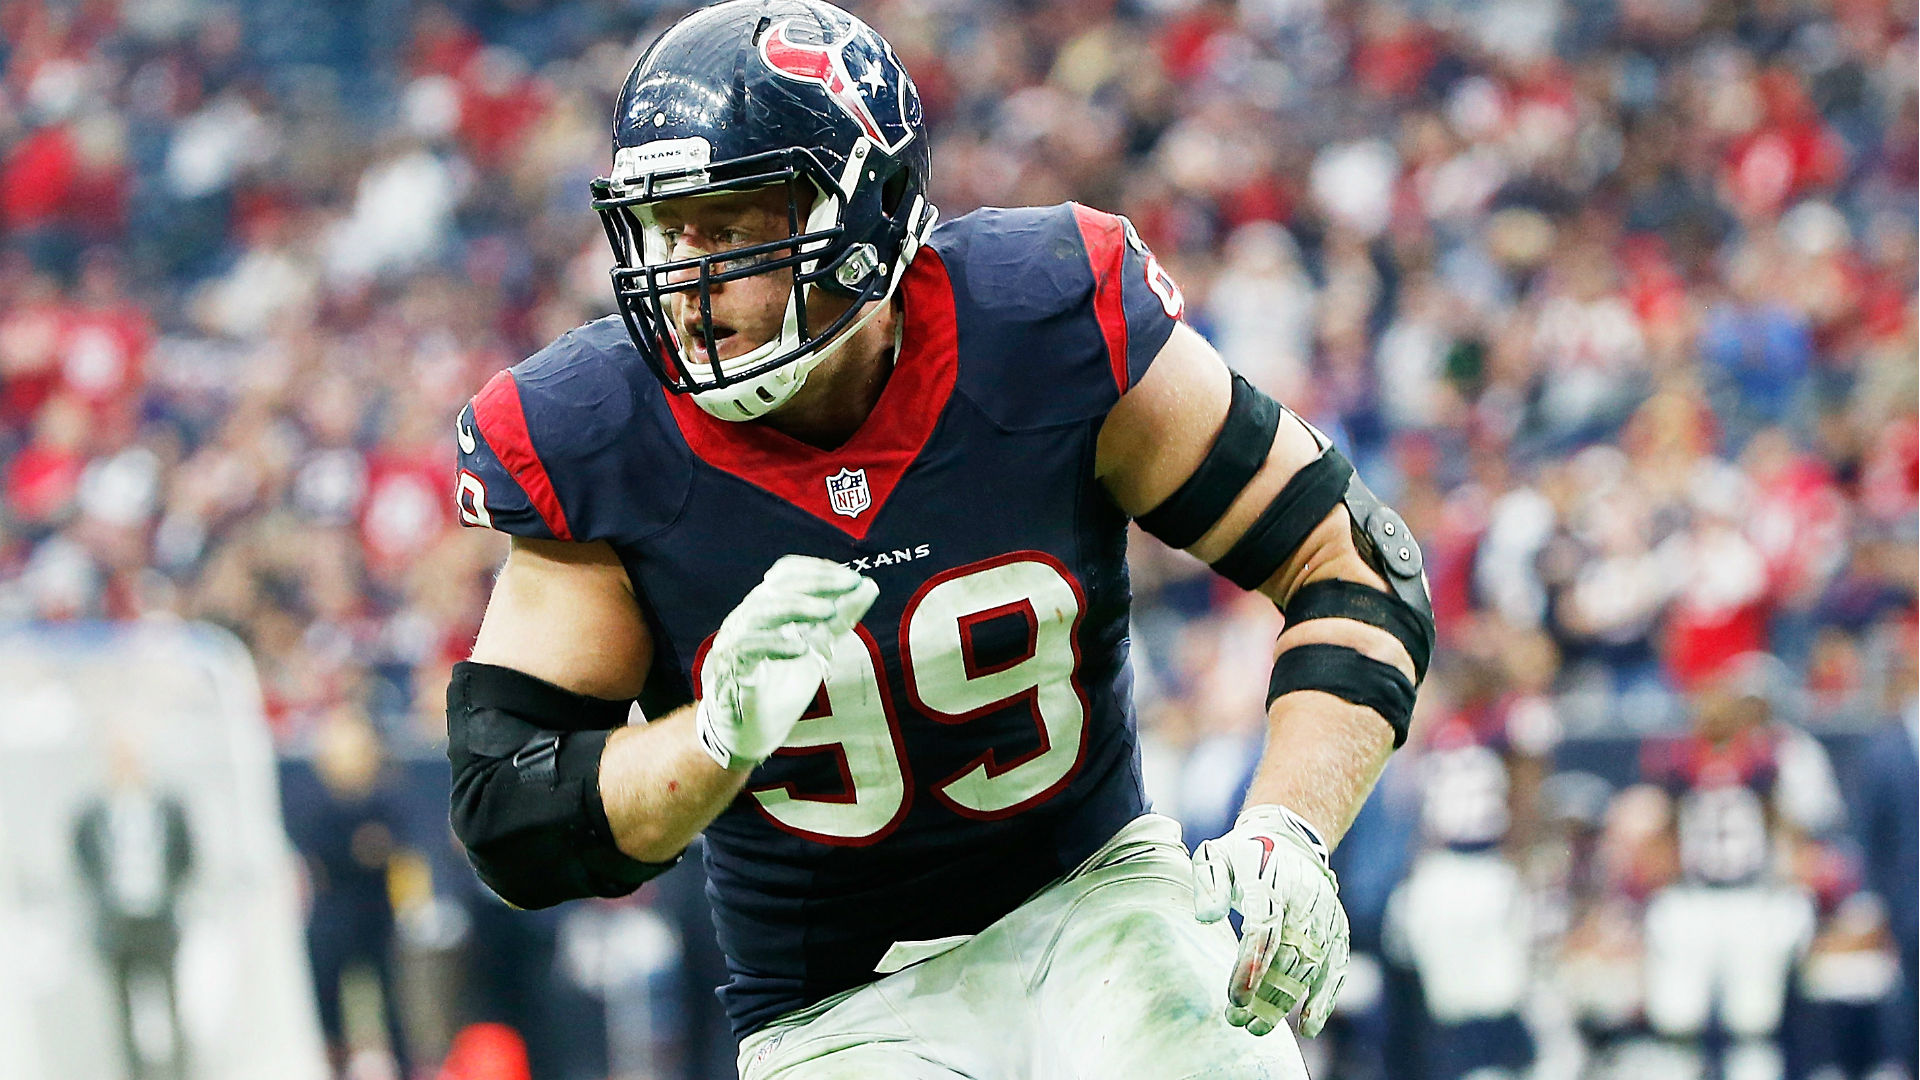 Jaguars vs. Texans betting lines and pick – All signs point to UNDER